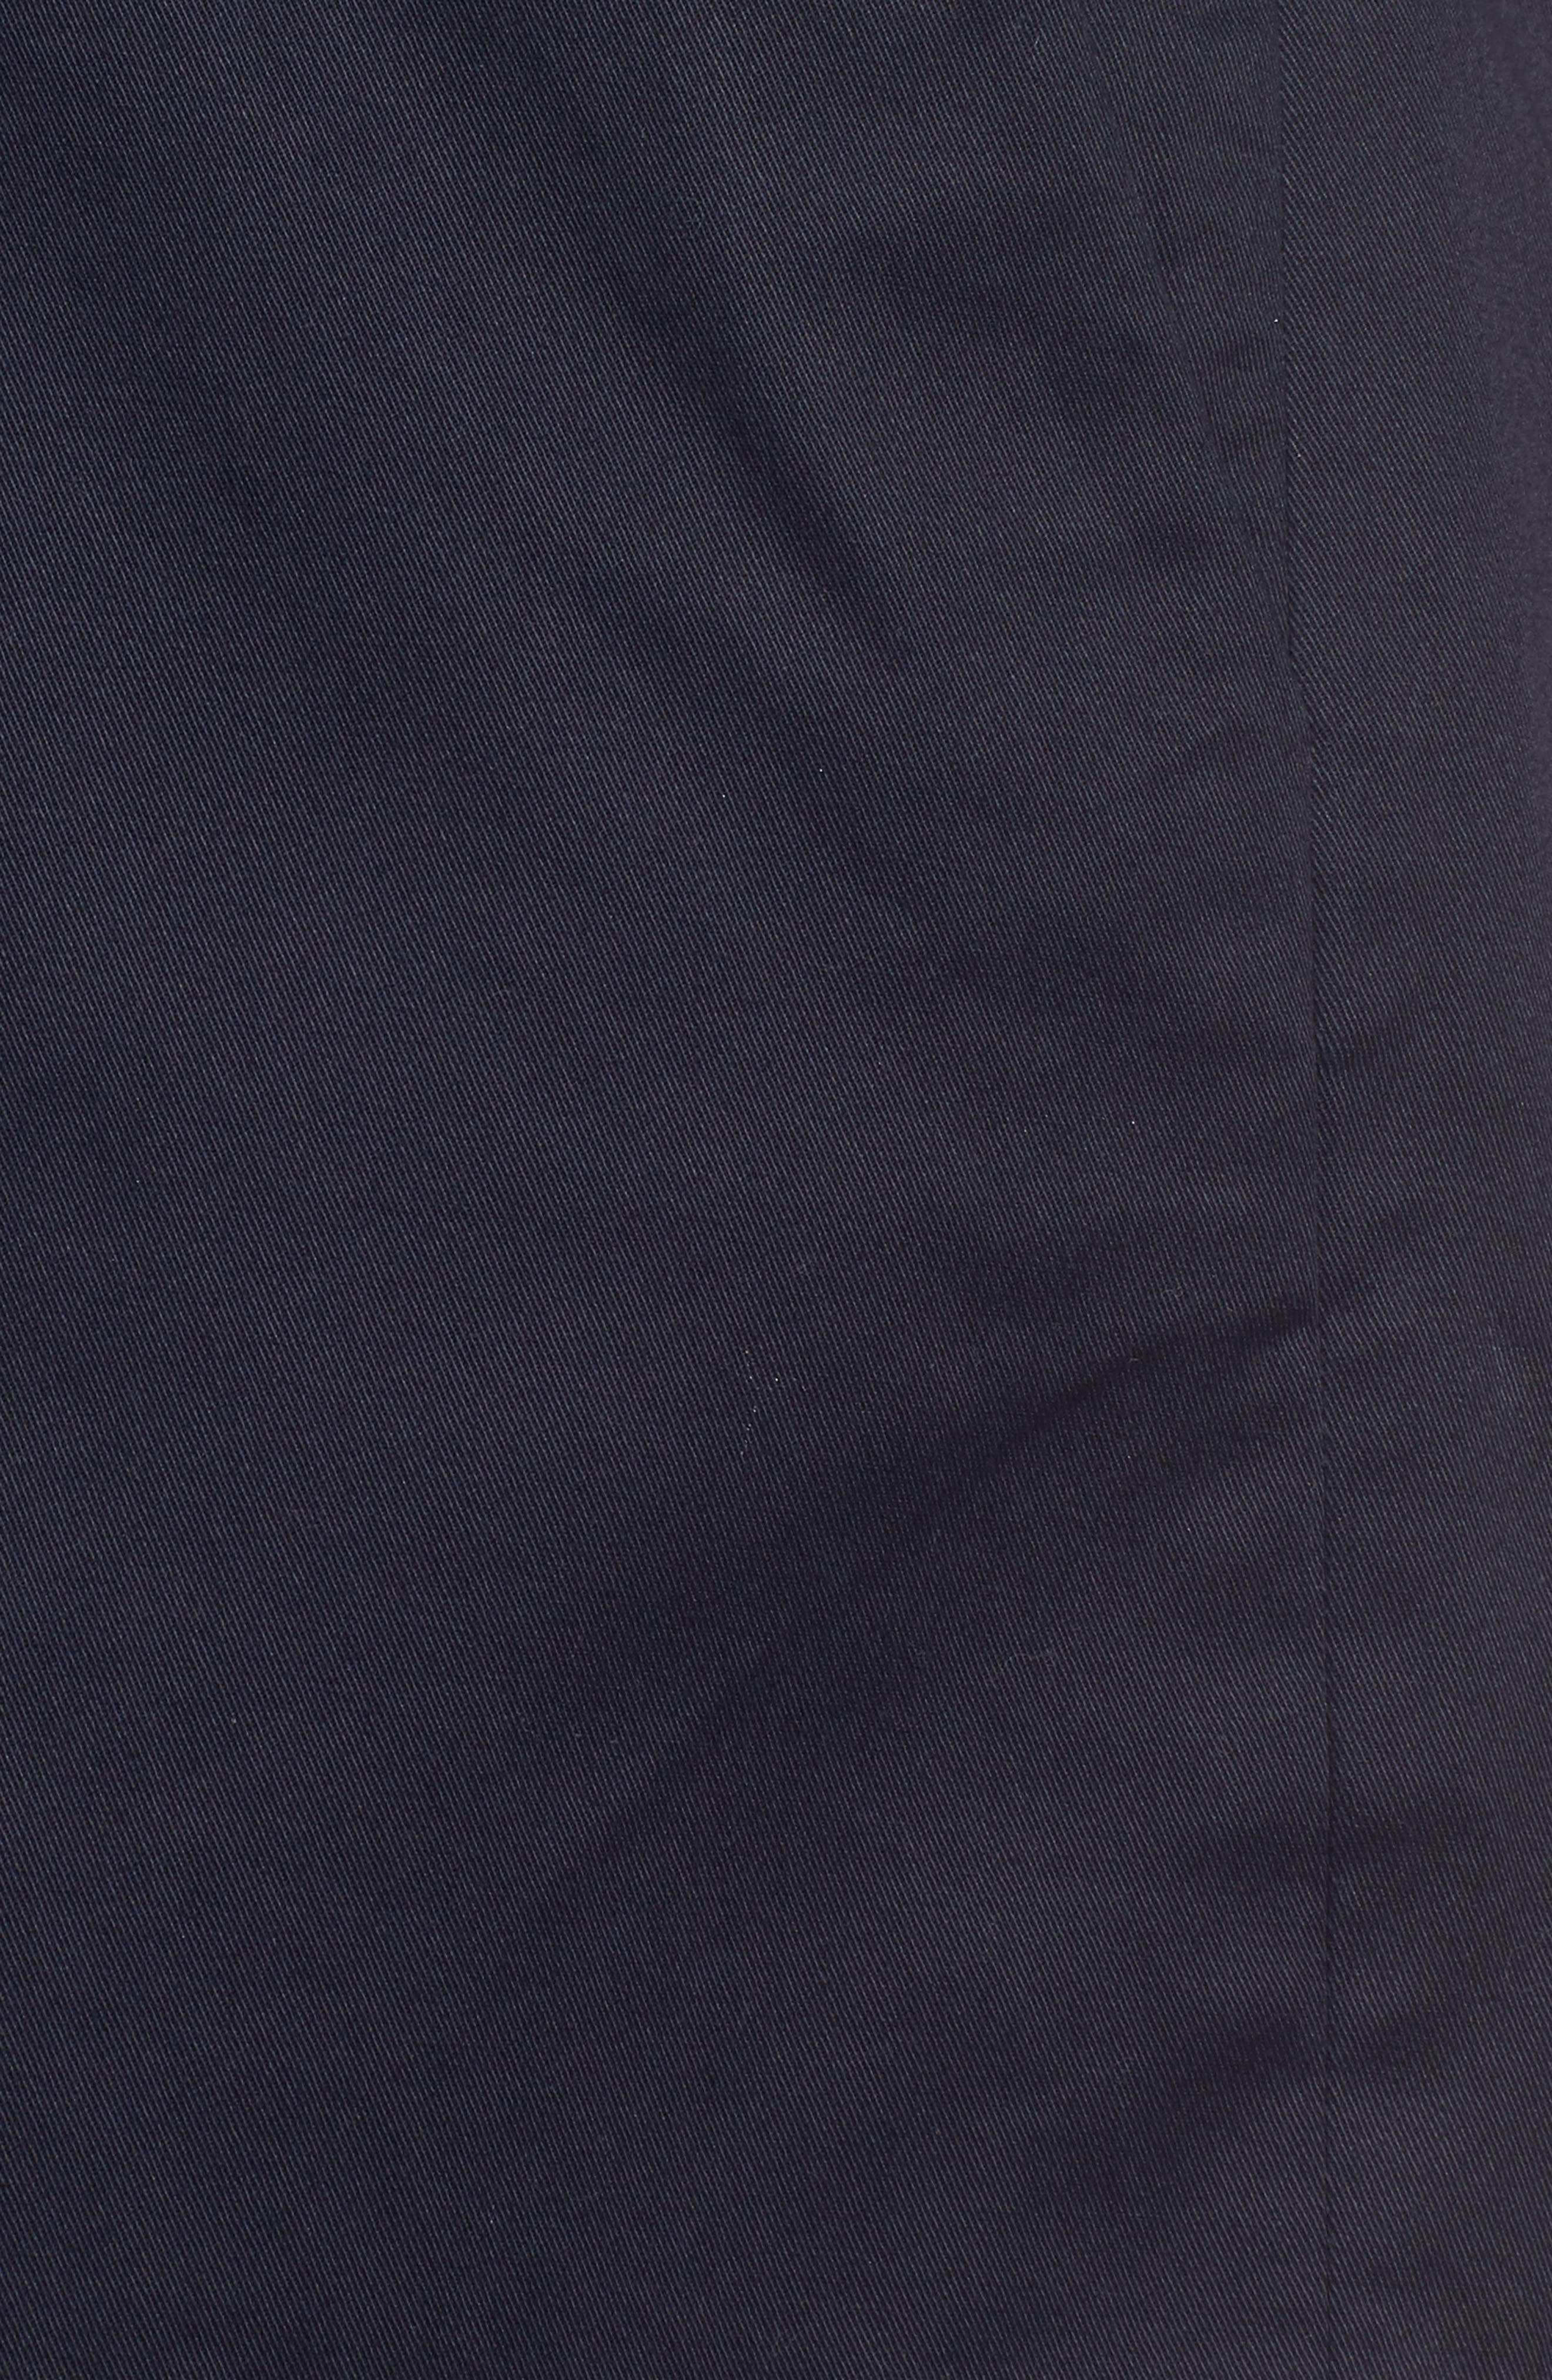 Pleated Twill Bow Front Shorts,                             Alternate thumbnail 5, color,                             Navy Night